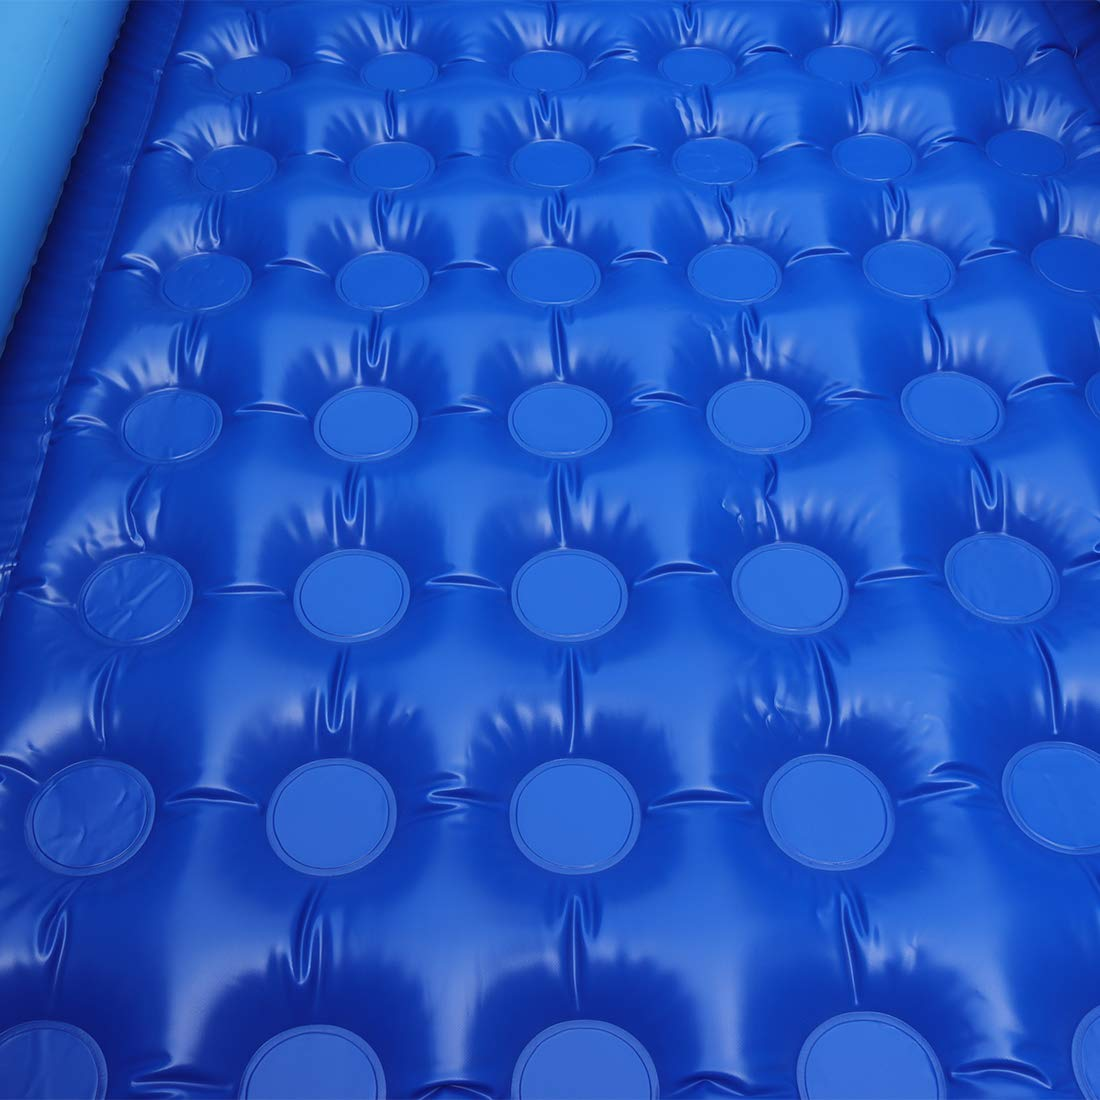 WEY/&FLY Swim Center Clearview Aquarium Inflatable Pool Blue, 1.2M for Ages 3+